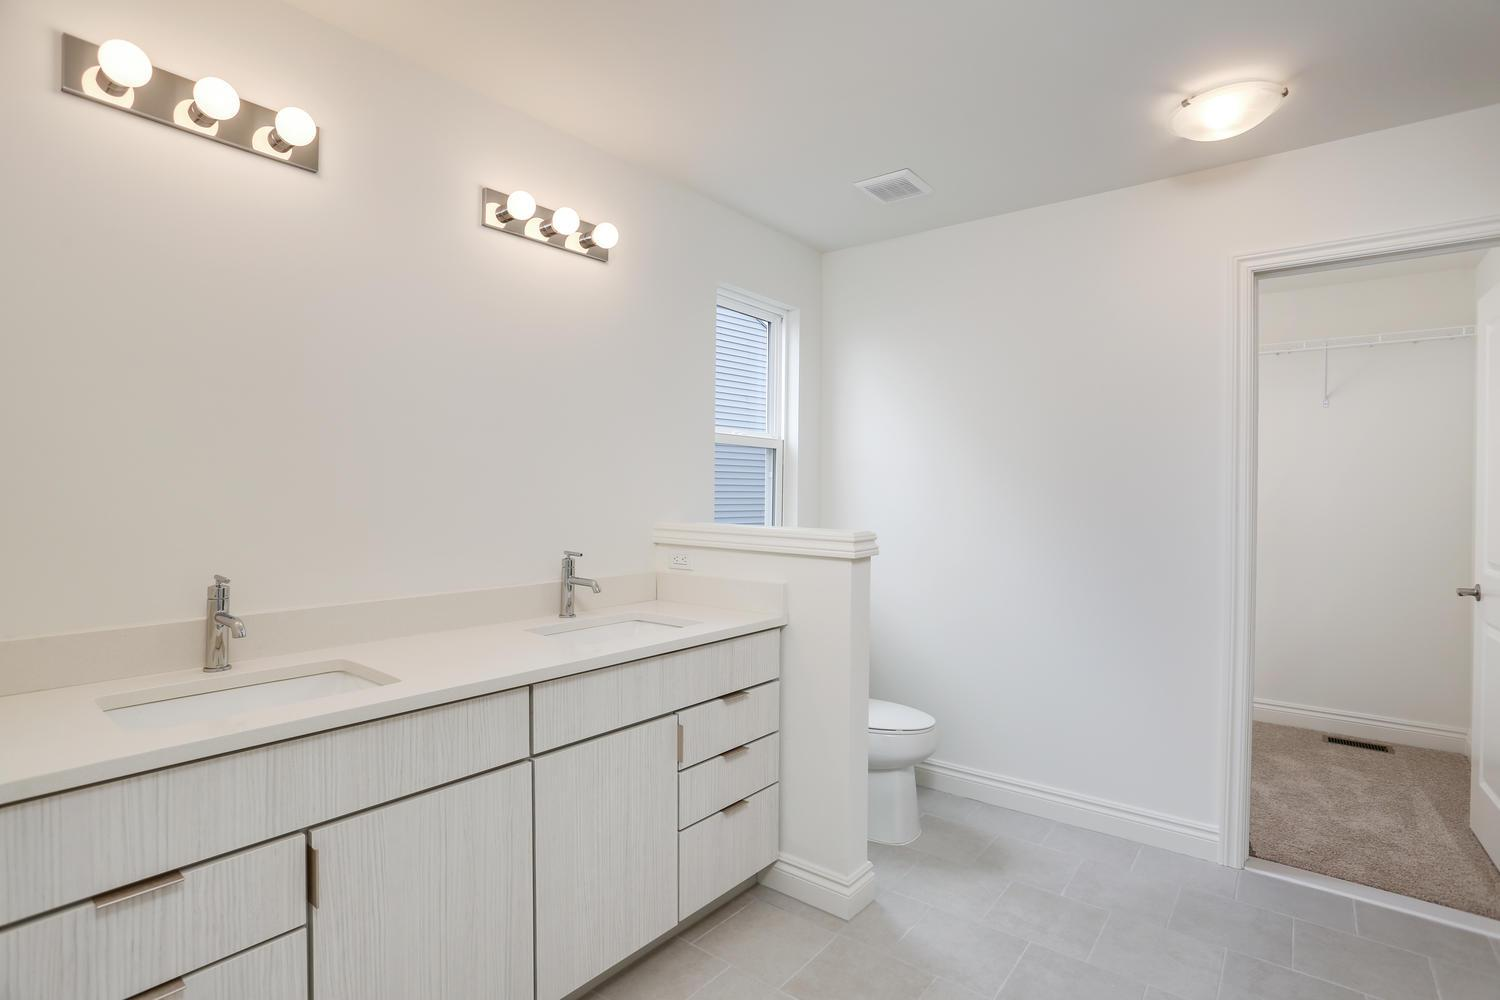 Bathroom featured in the Richmond at Lakeview By Robertson Brothers  in Detroit, MI